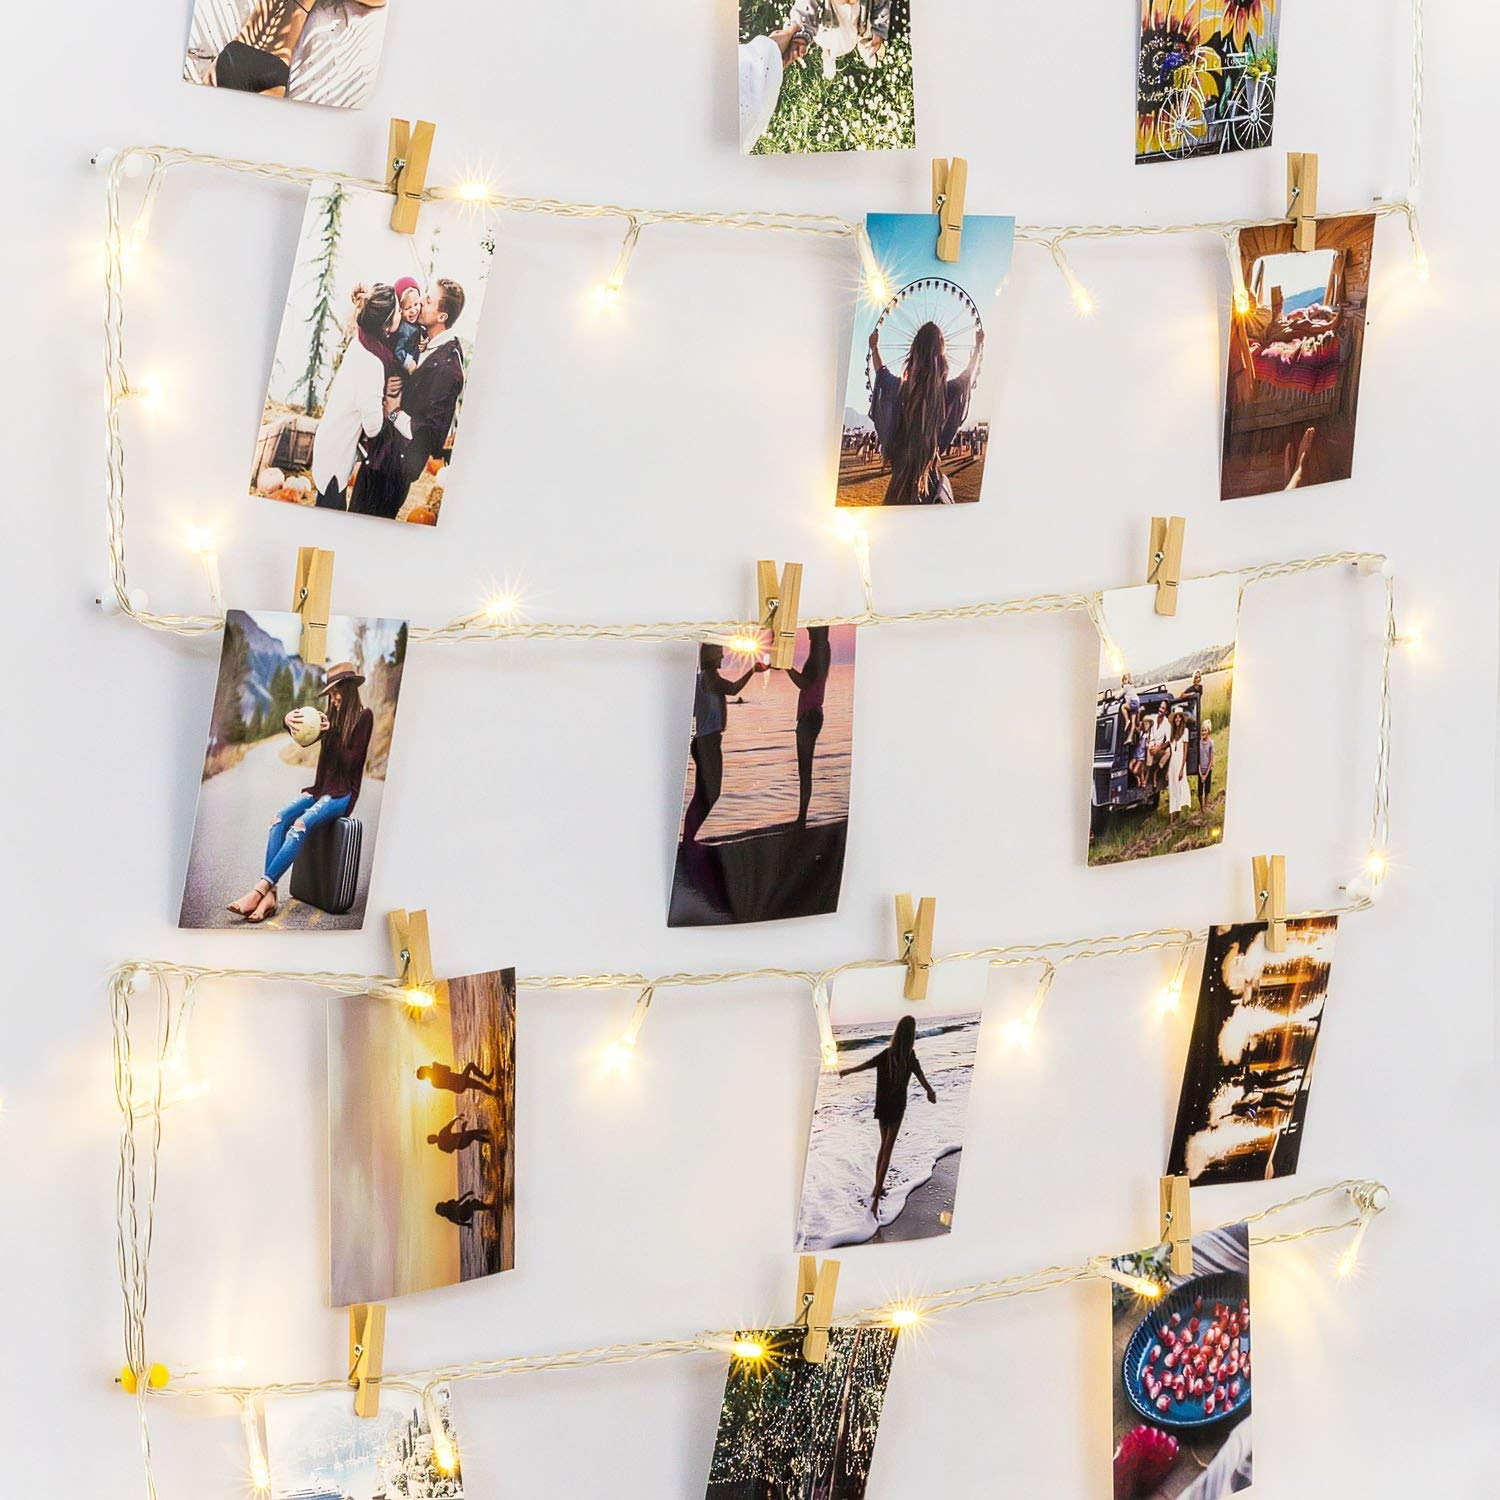 HAYATA [Remote & Timer] 40 LED Wooden Photo Clips String Light Picture Display - 30ft Fairy Battery Operated Hanging Picture Frame for Party Wedding Dorm Bedroom Birthday Christmas Decorations